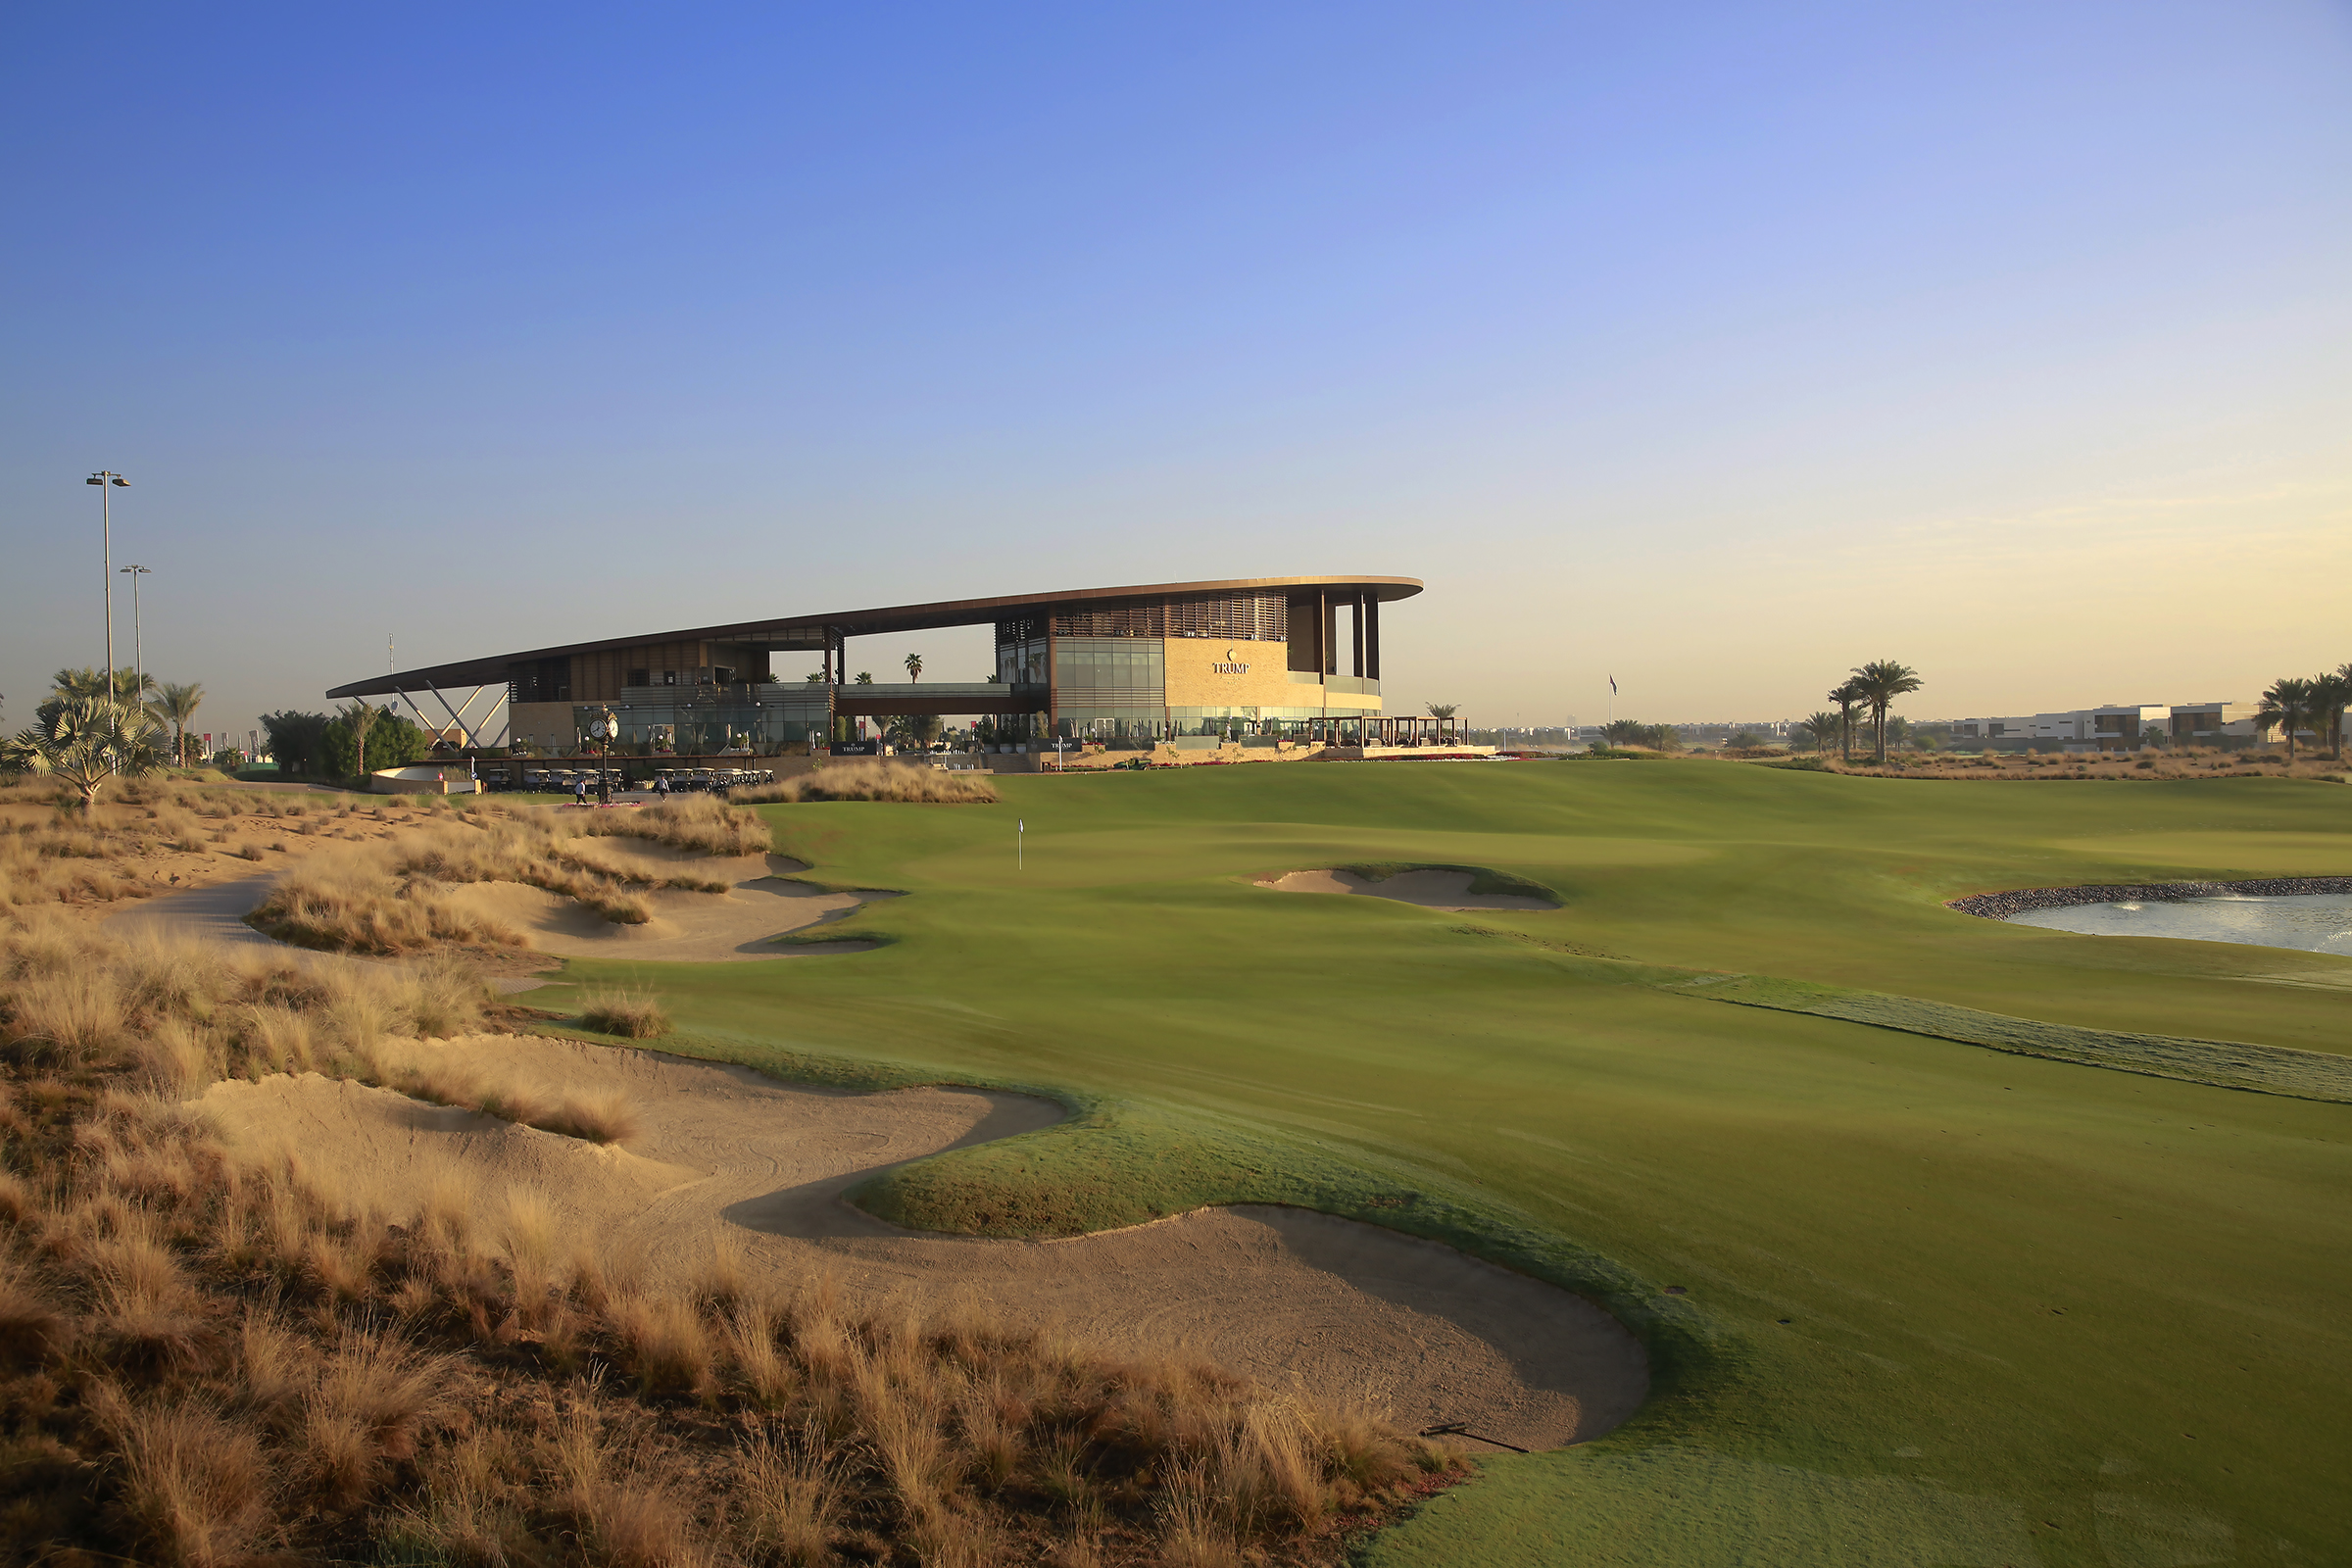 Trump International Golf Club - godesto.com